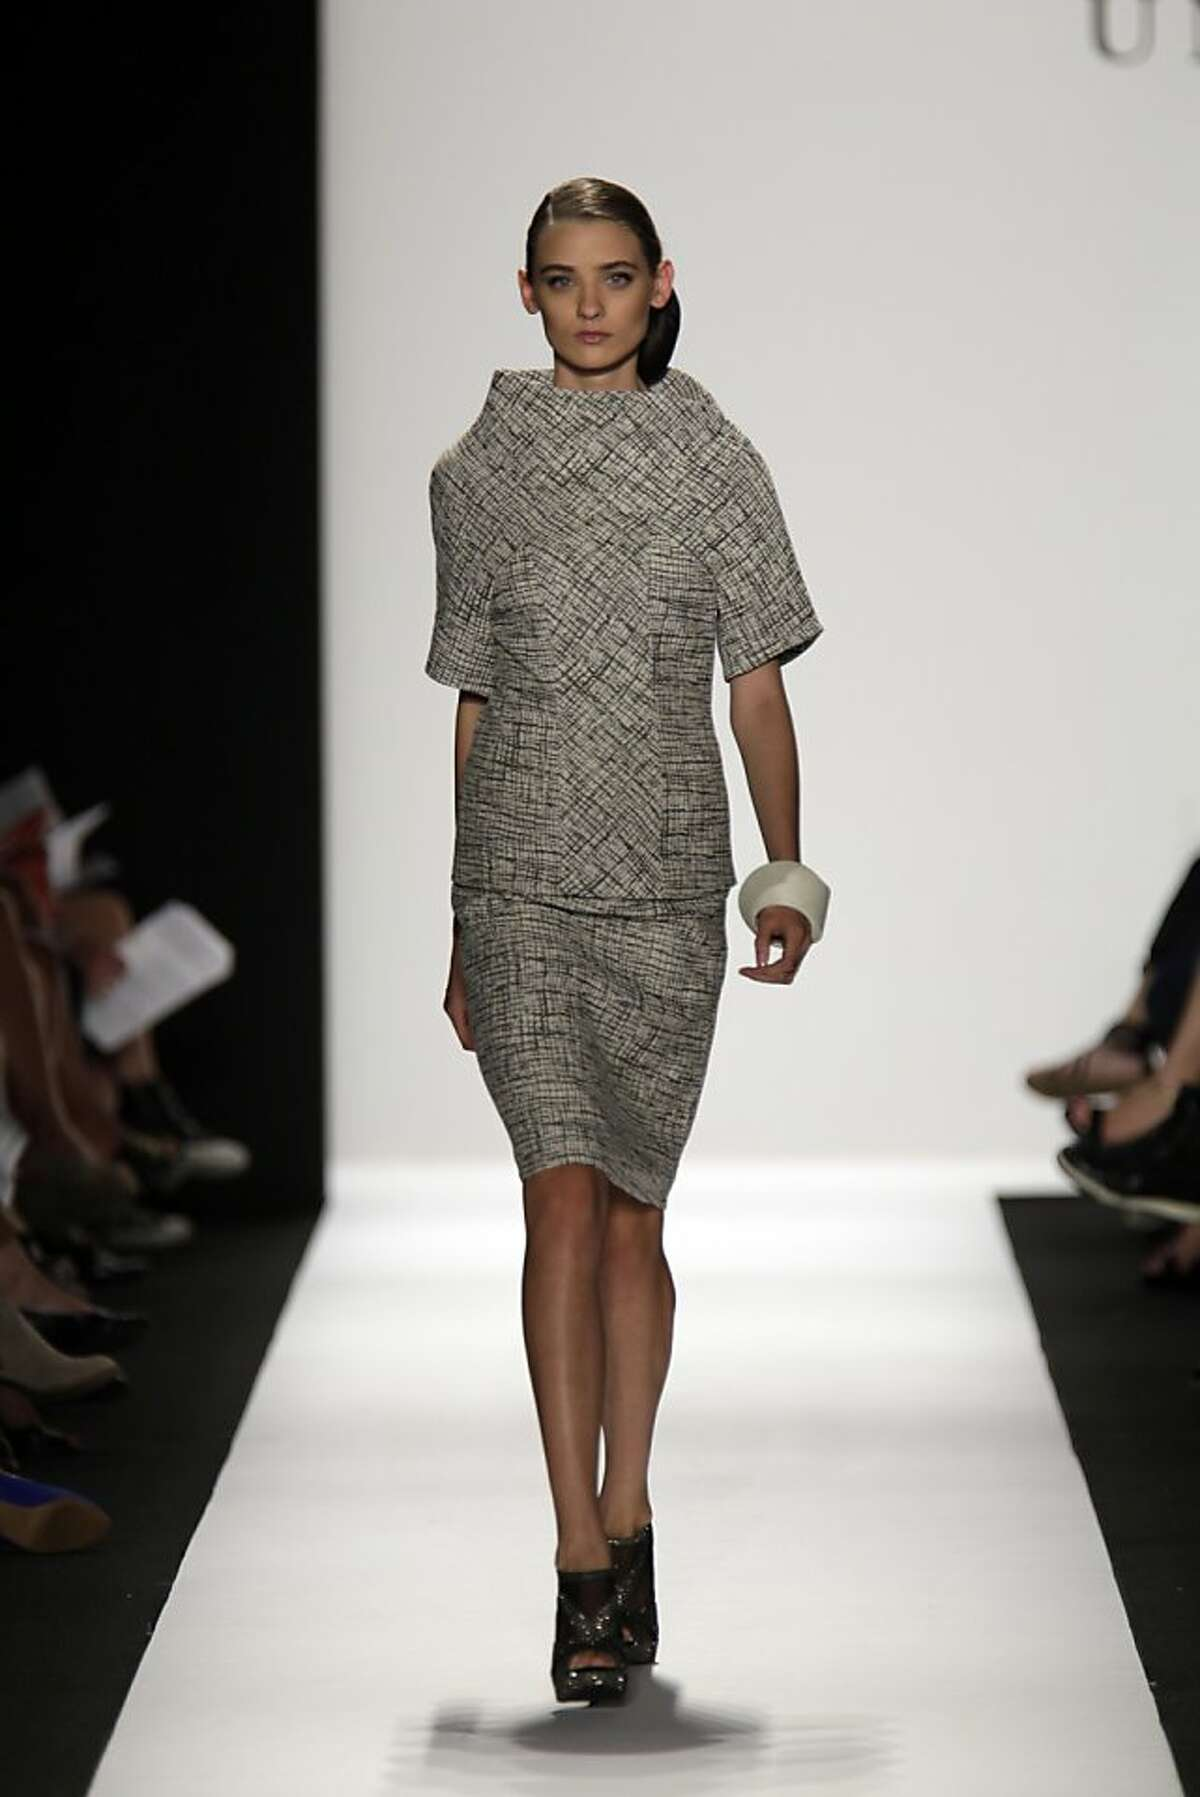 Runway looks by Tanja Milutinovic at the Academy of Art fashion show Sept. 27.